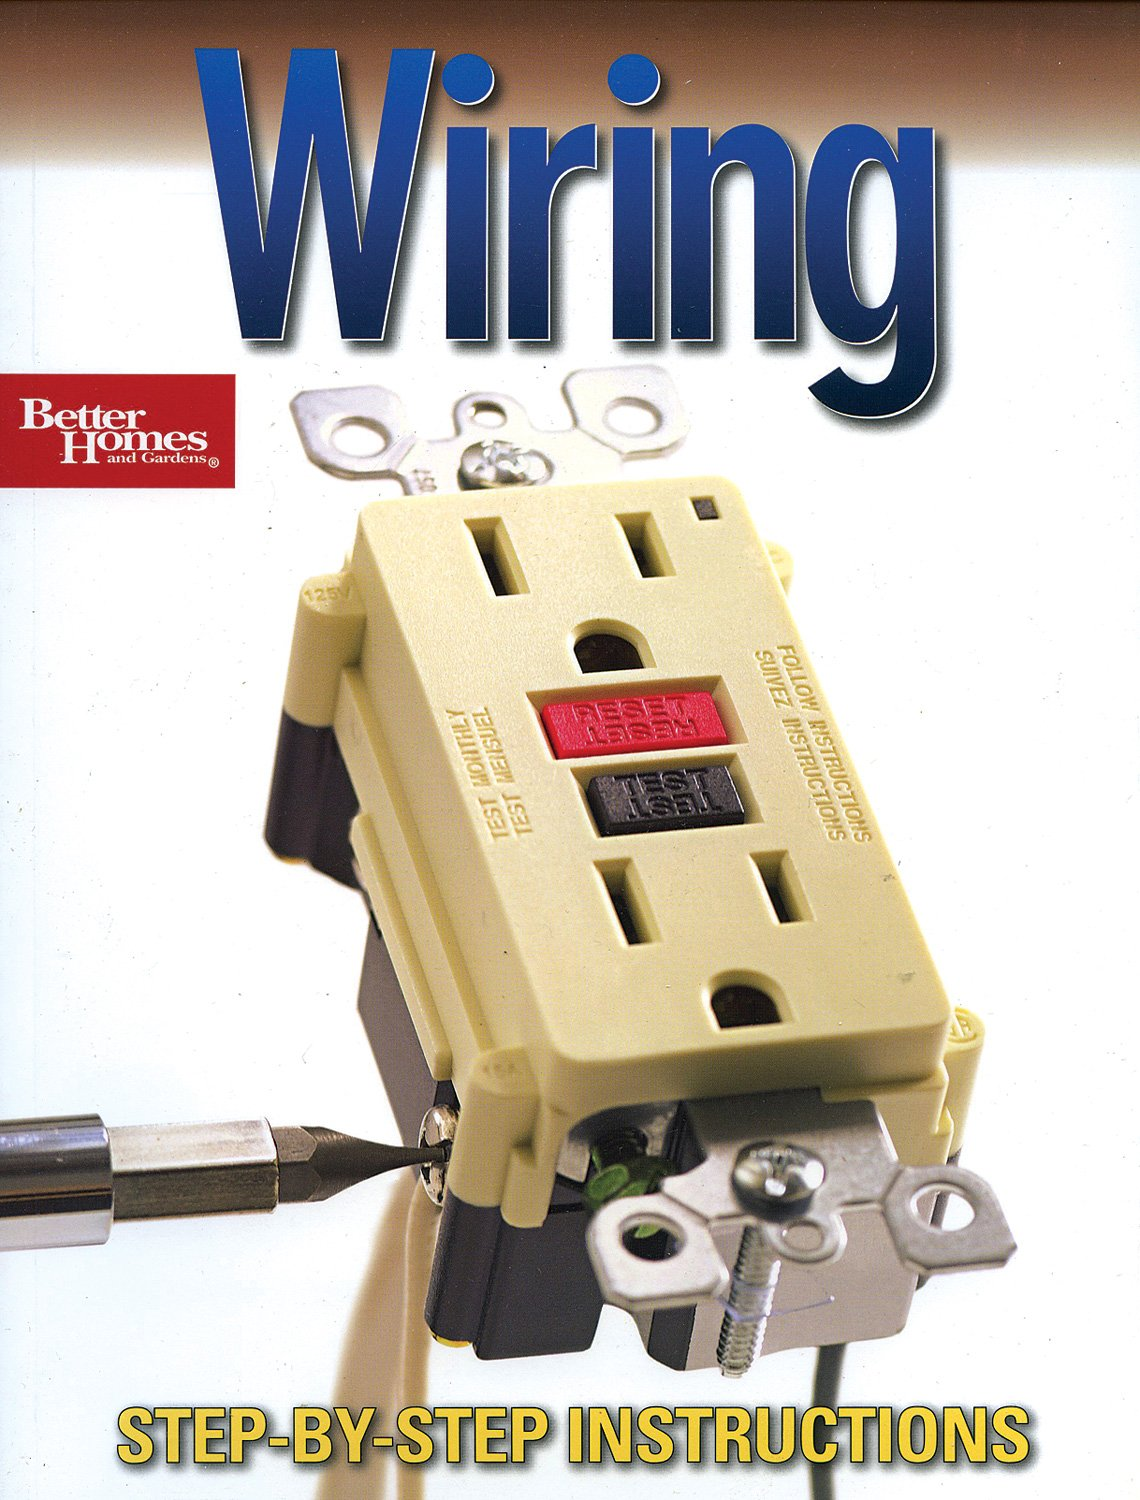 Wiring Better Homes And Gardens Home Technology For Dummies 9780696235412 Books